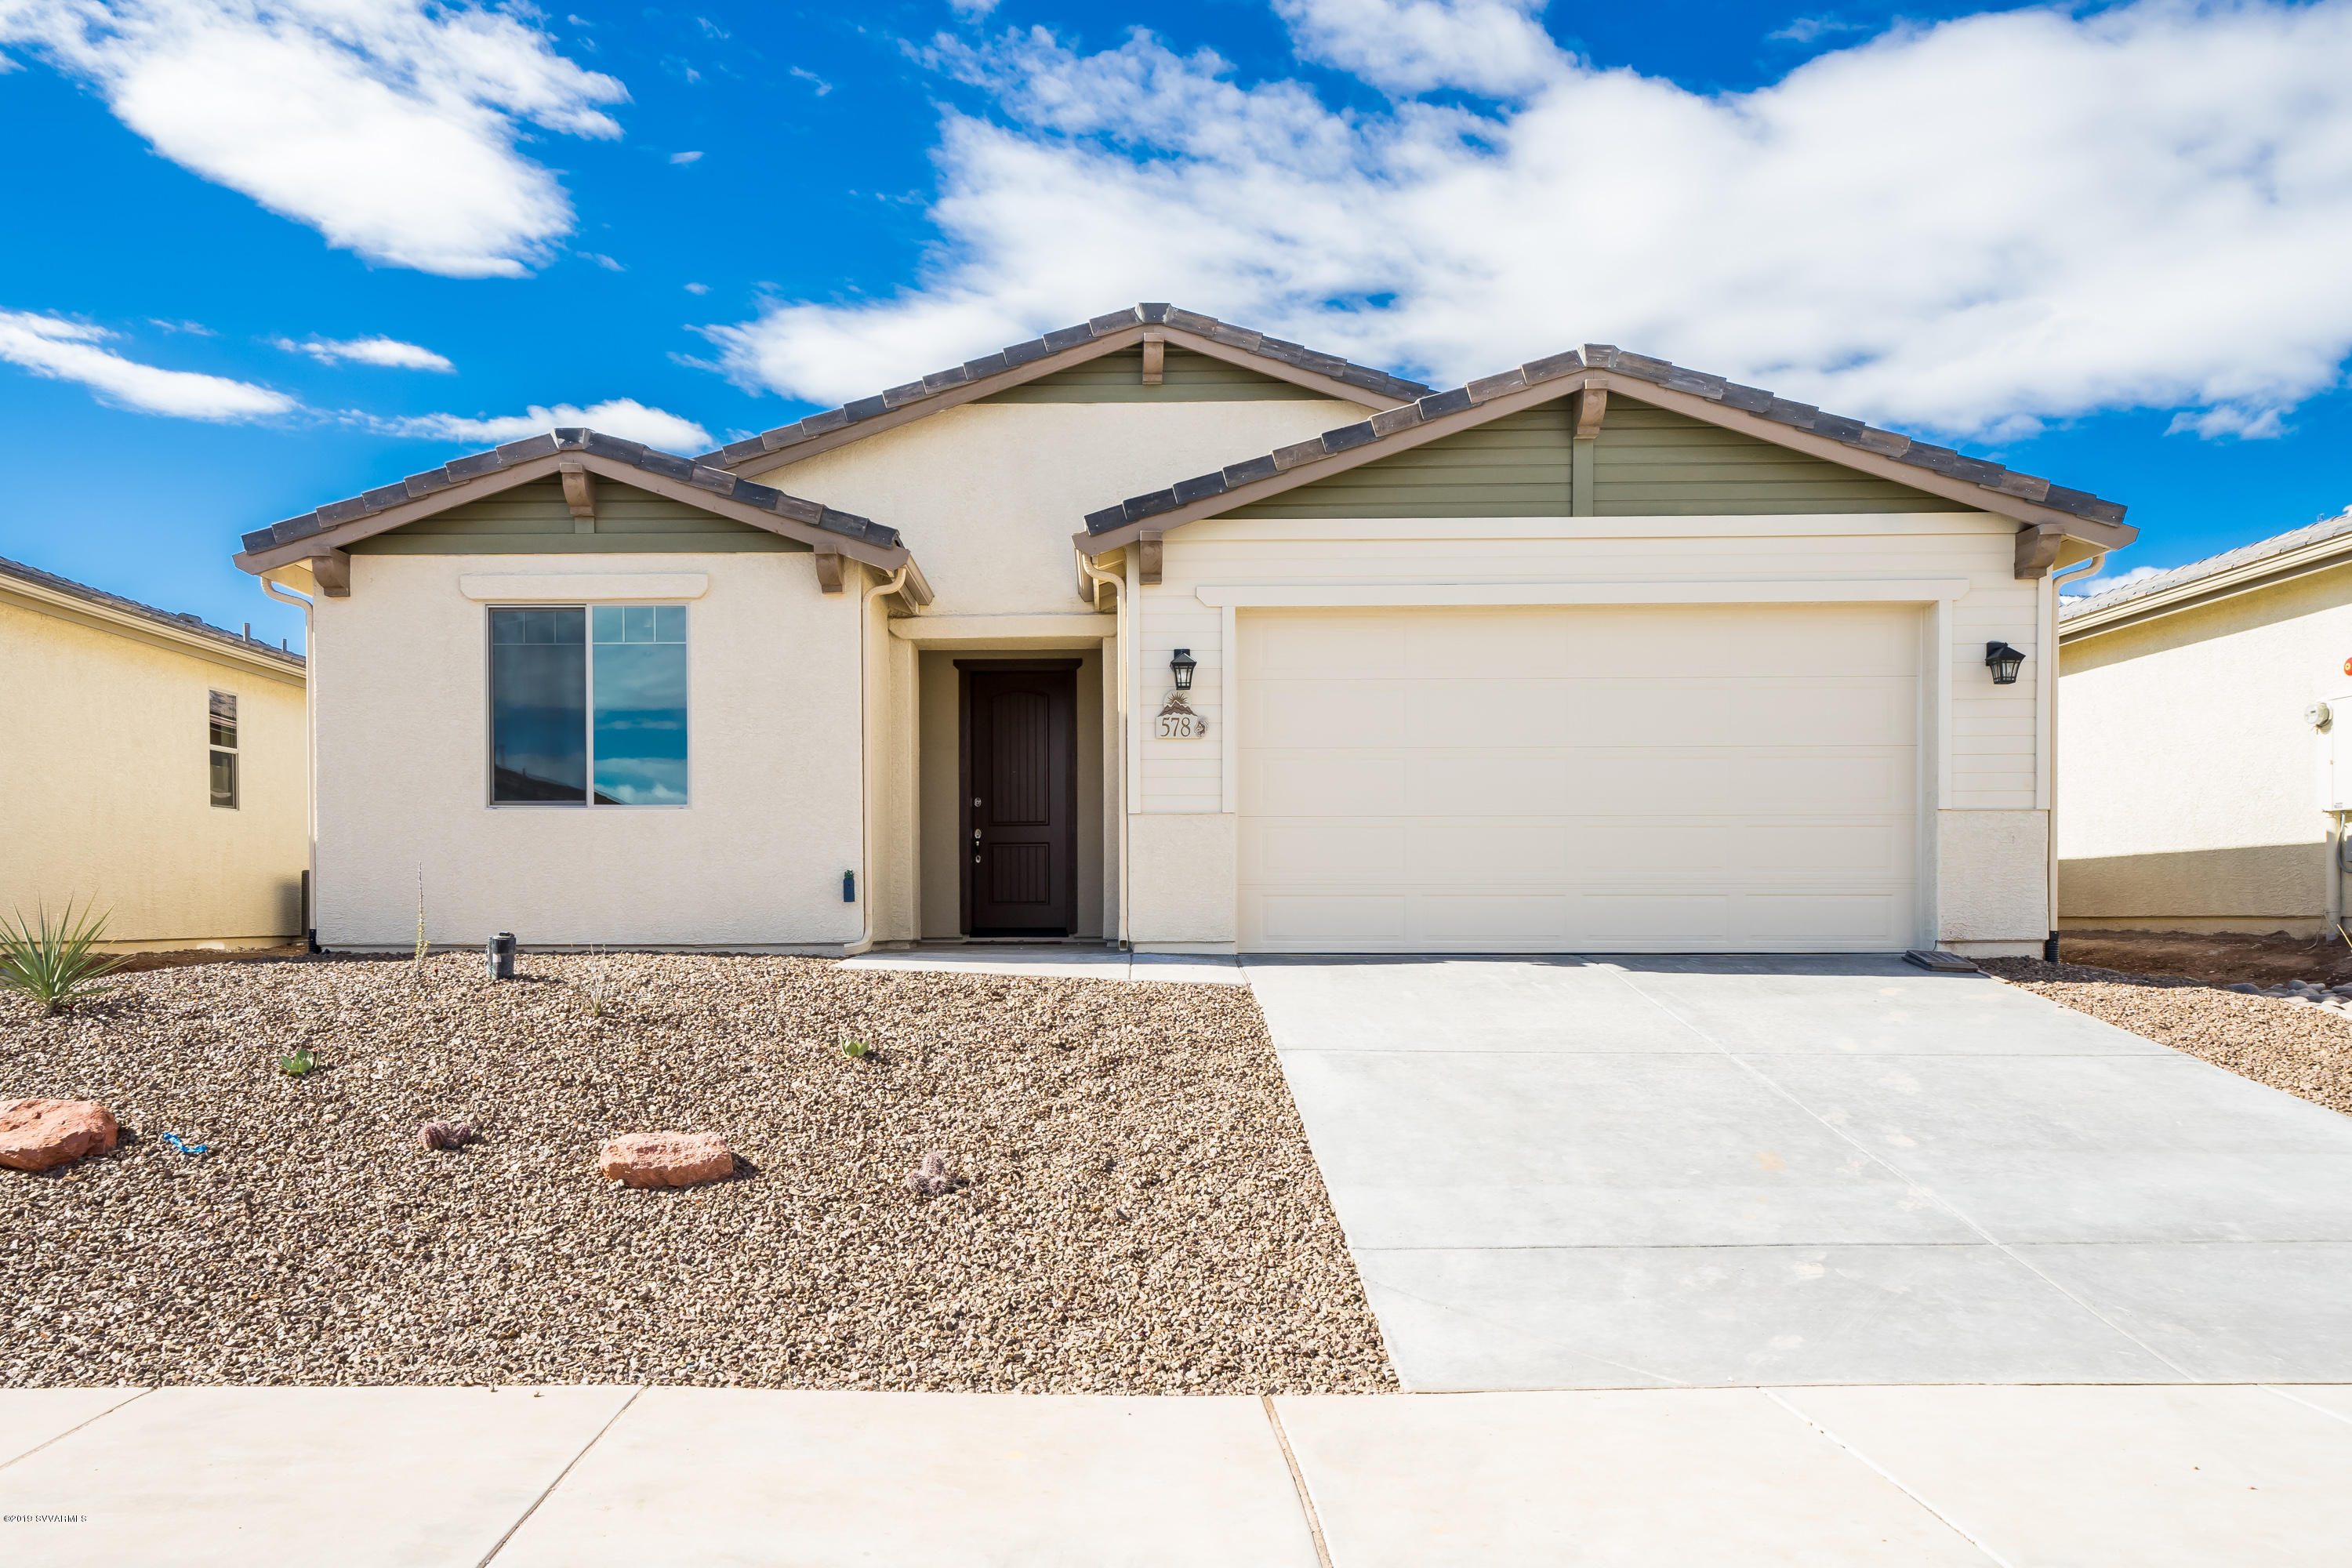 578 Horseshoe Bend Circle Cottonwood, AZ 86326